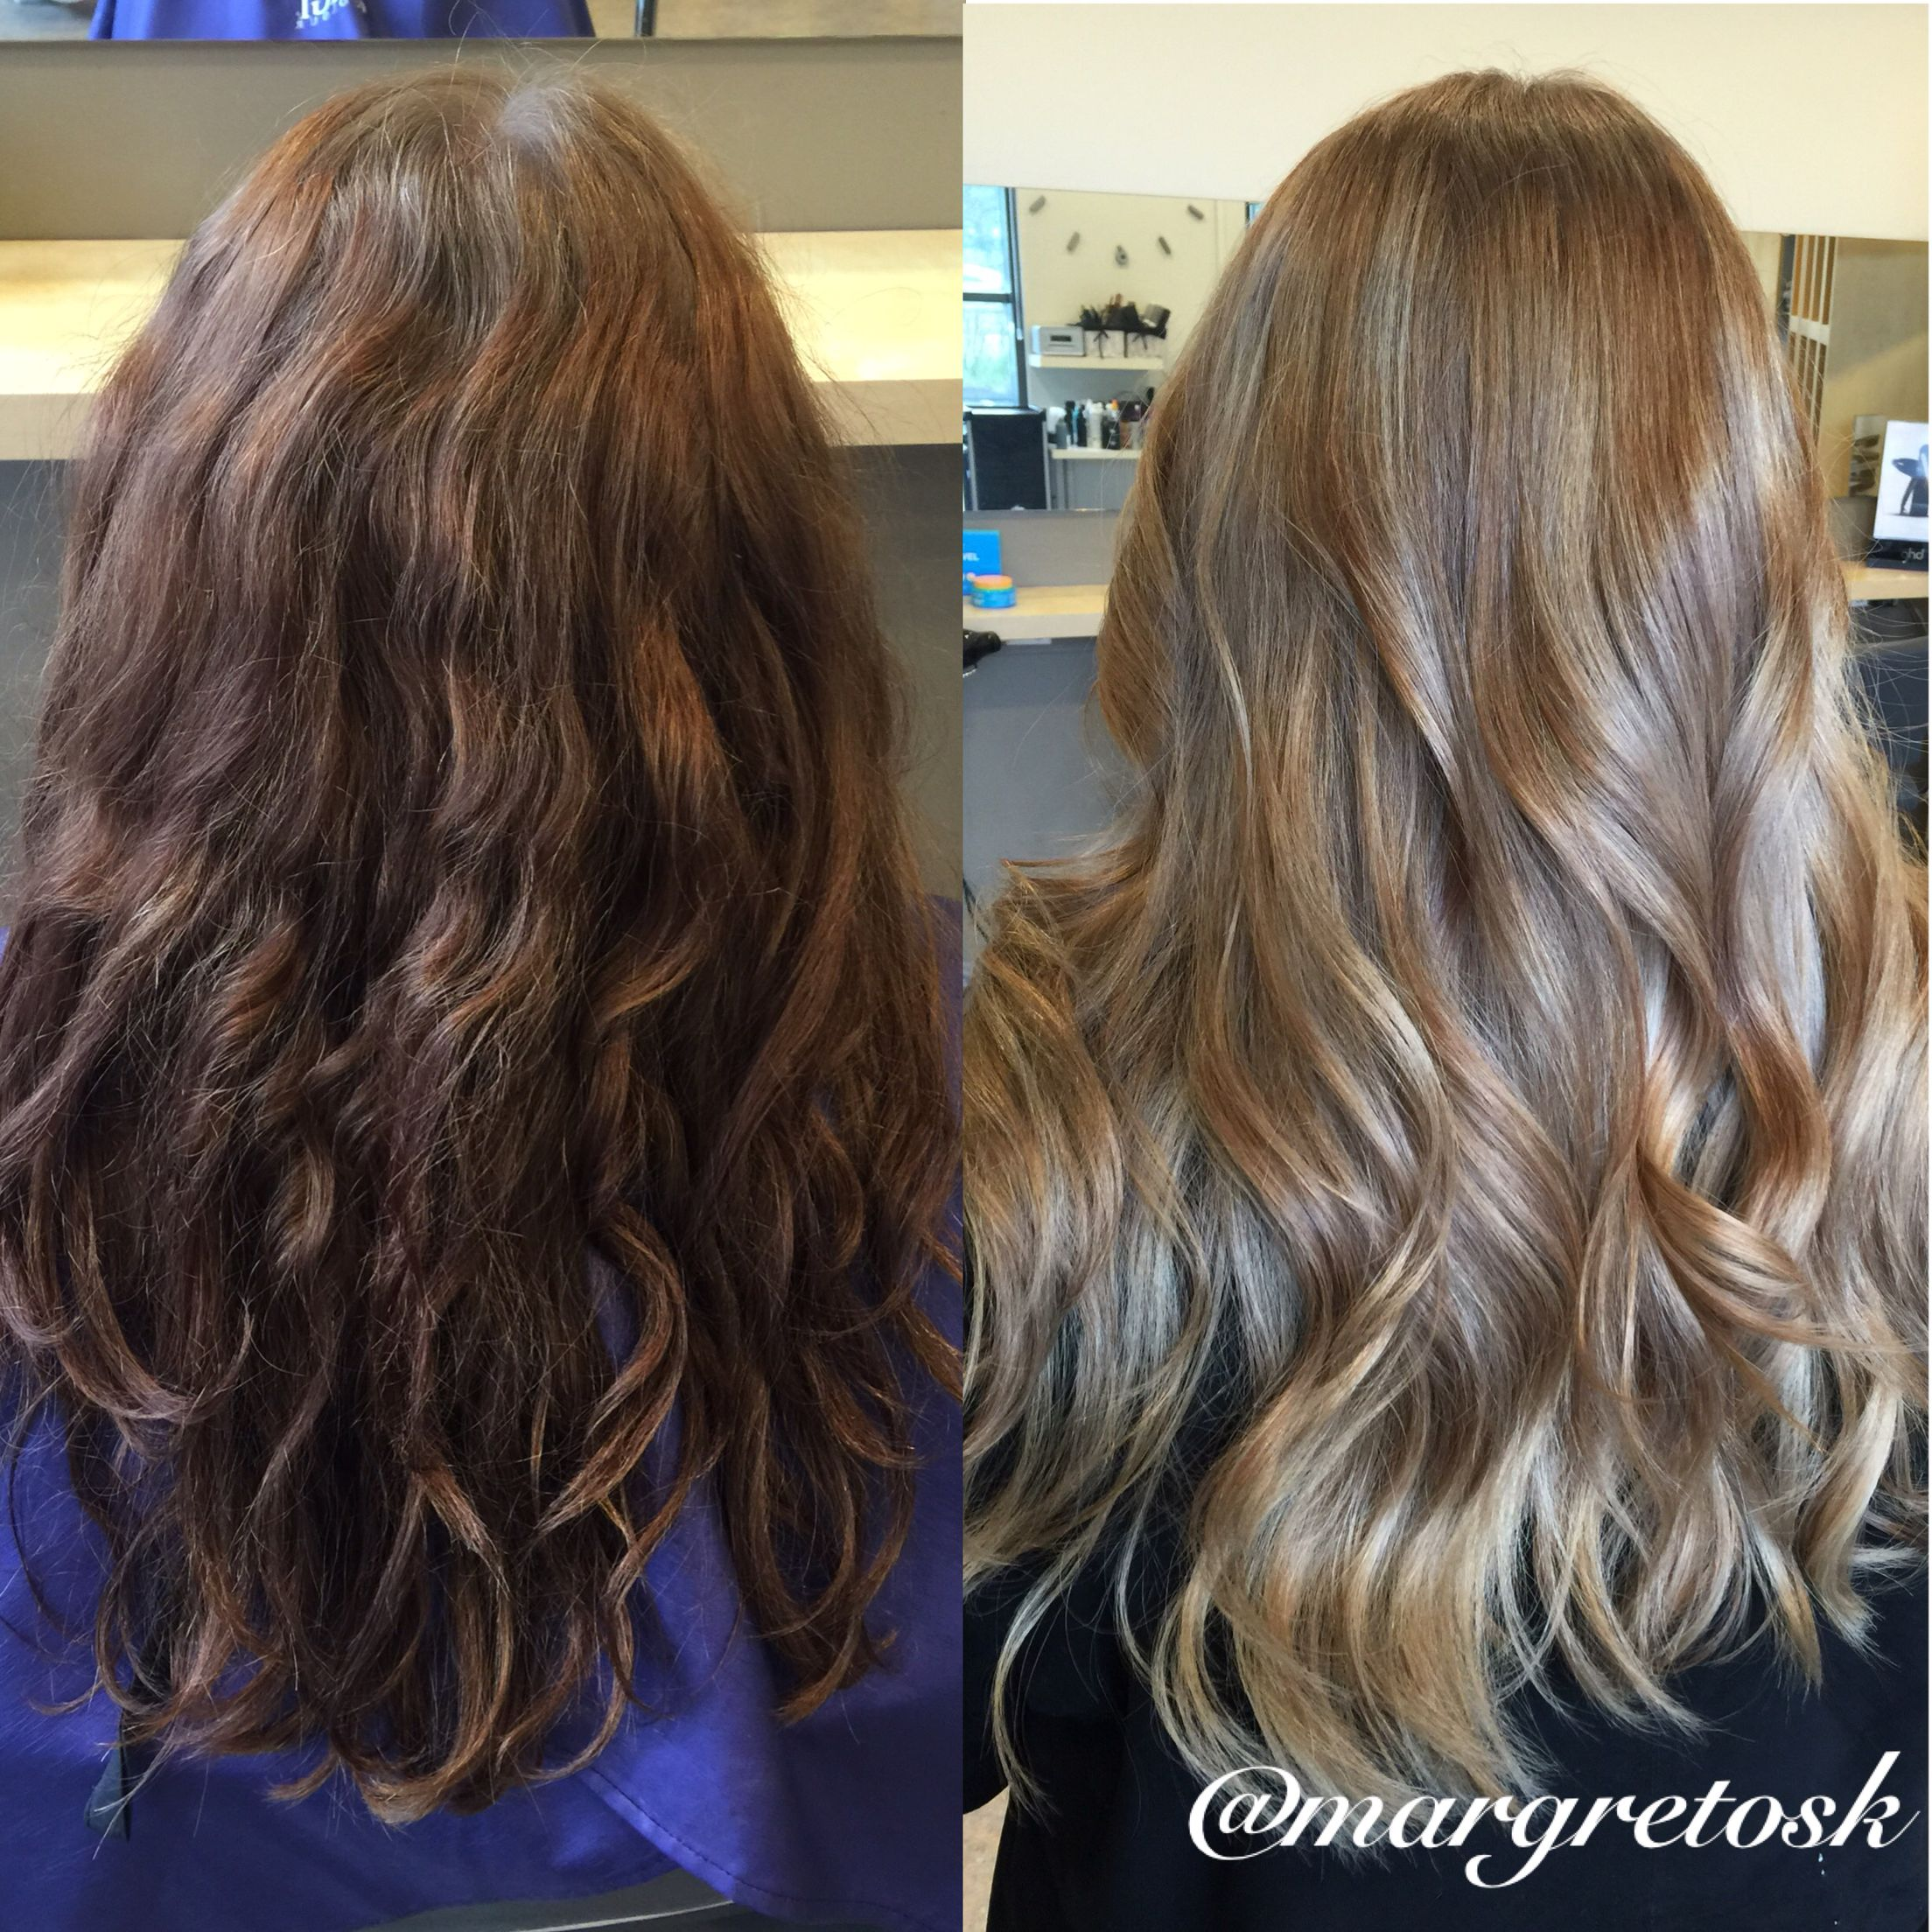 Before And After Coloring From Dark Brown To A Softer More Natural Lighter Color Blonde Hair Dark To Light Hair Light Hair Hair Styles